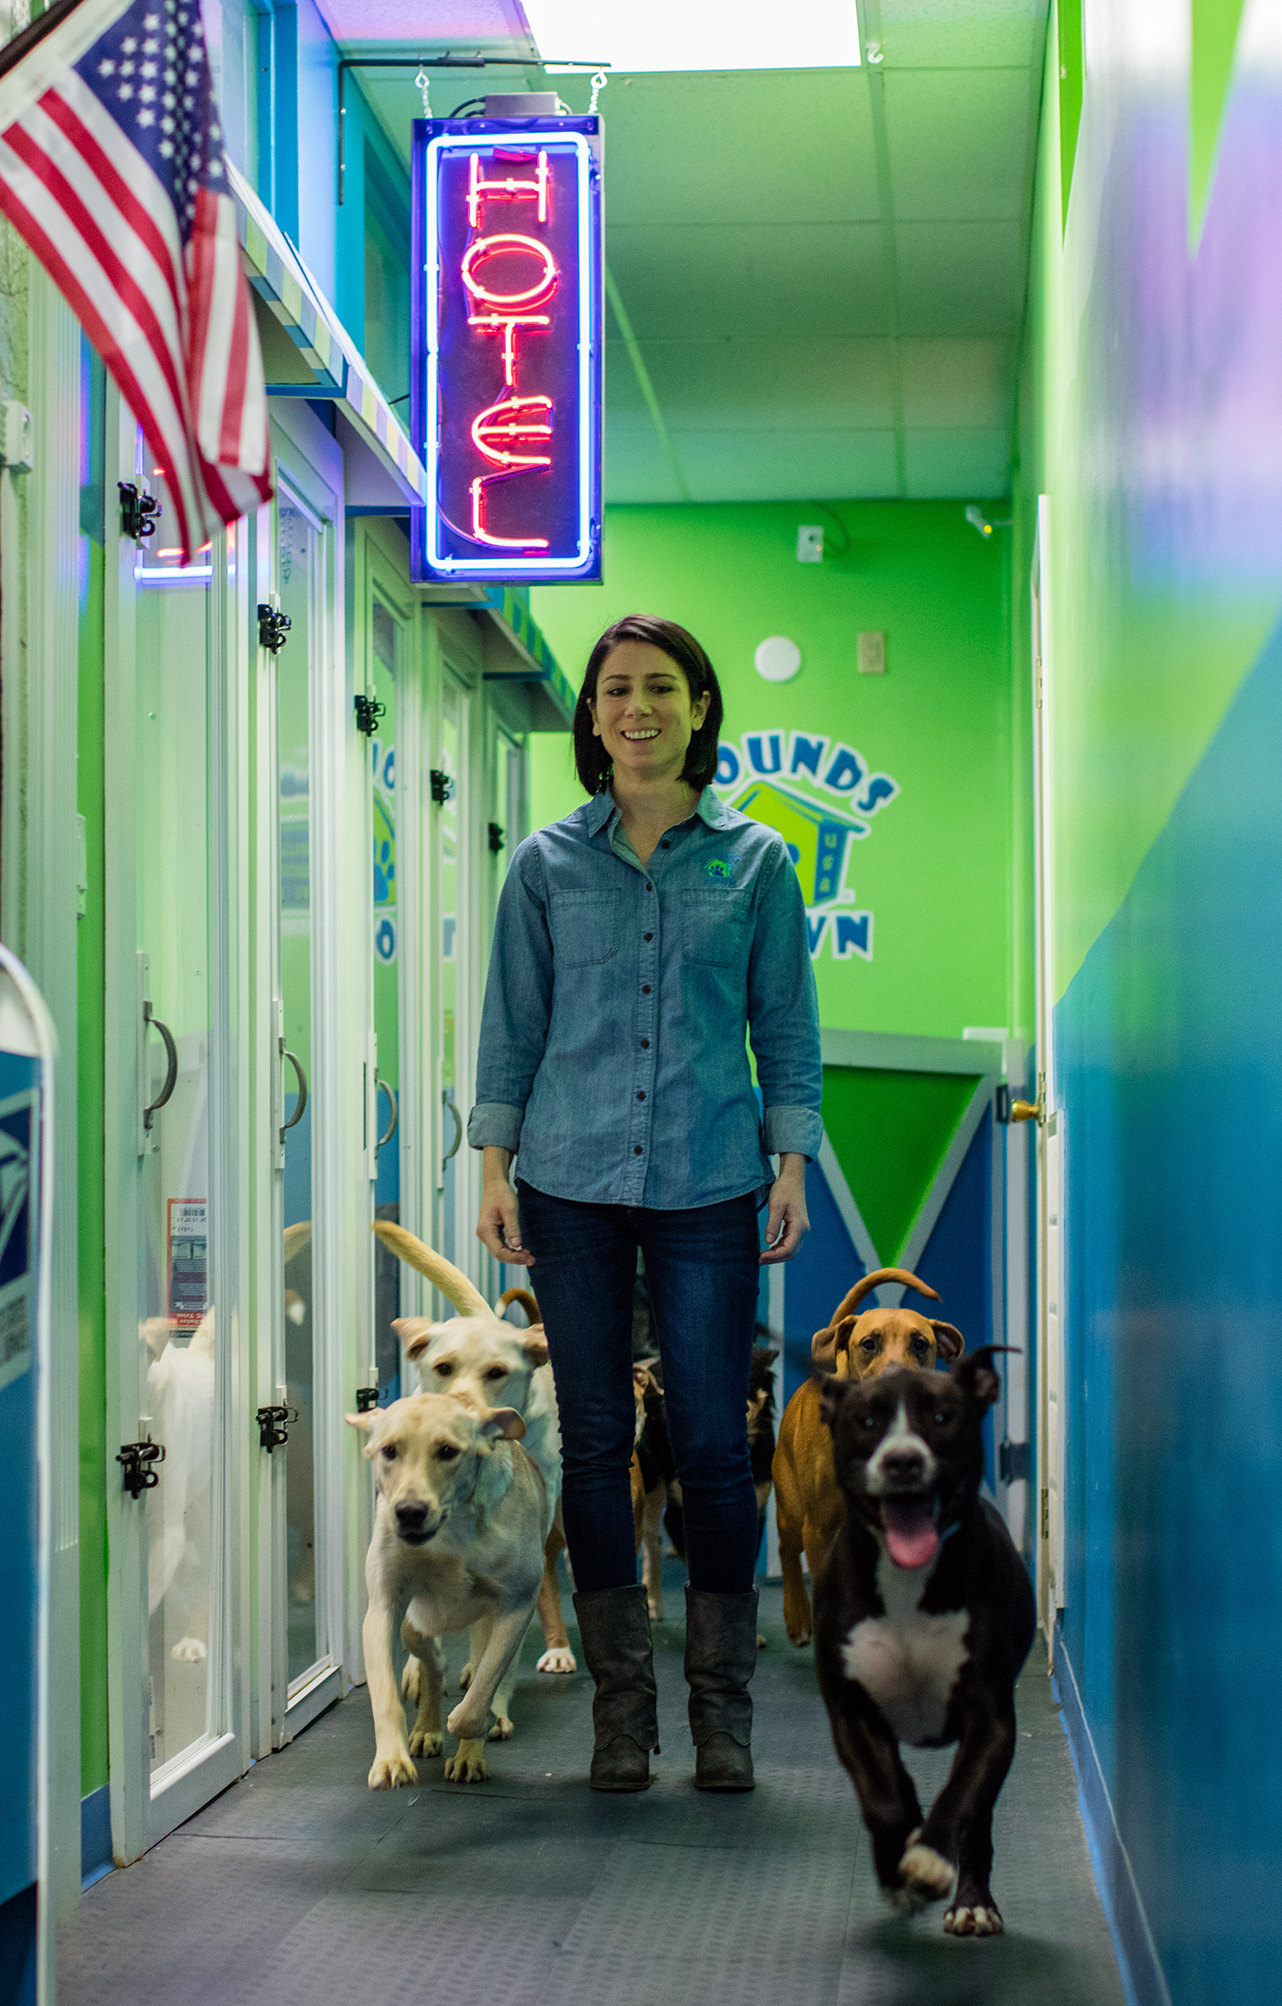 Doggie Daycare Franchise Hounds Town USA to Open Two Locations in New Jersey